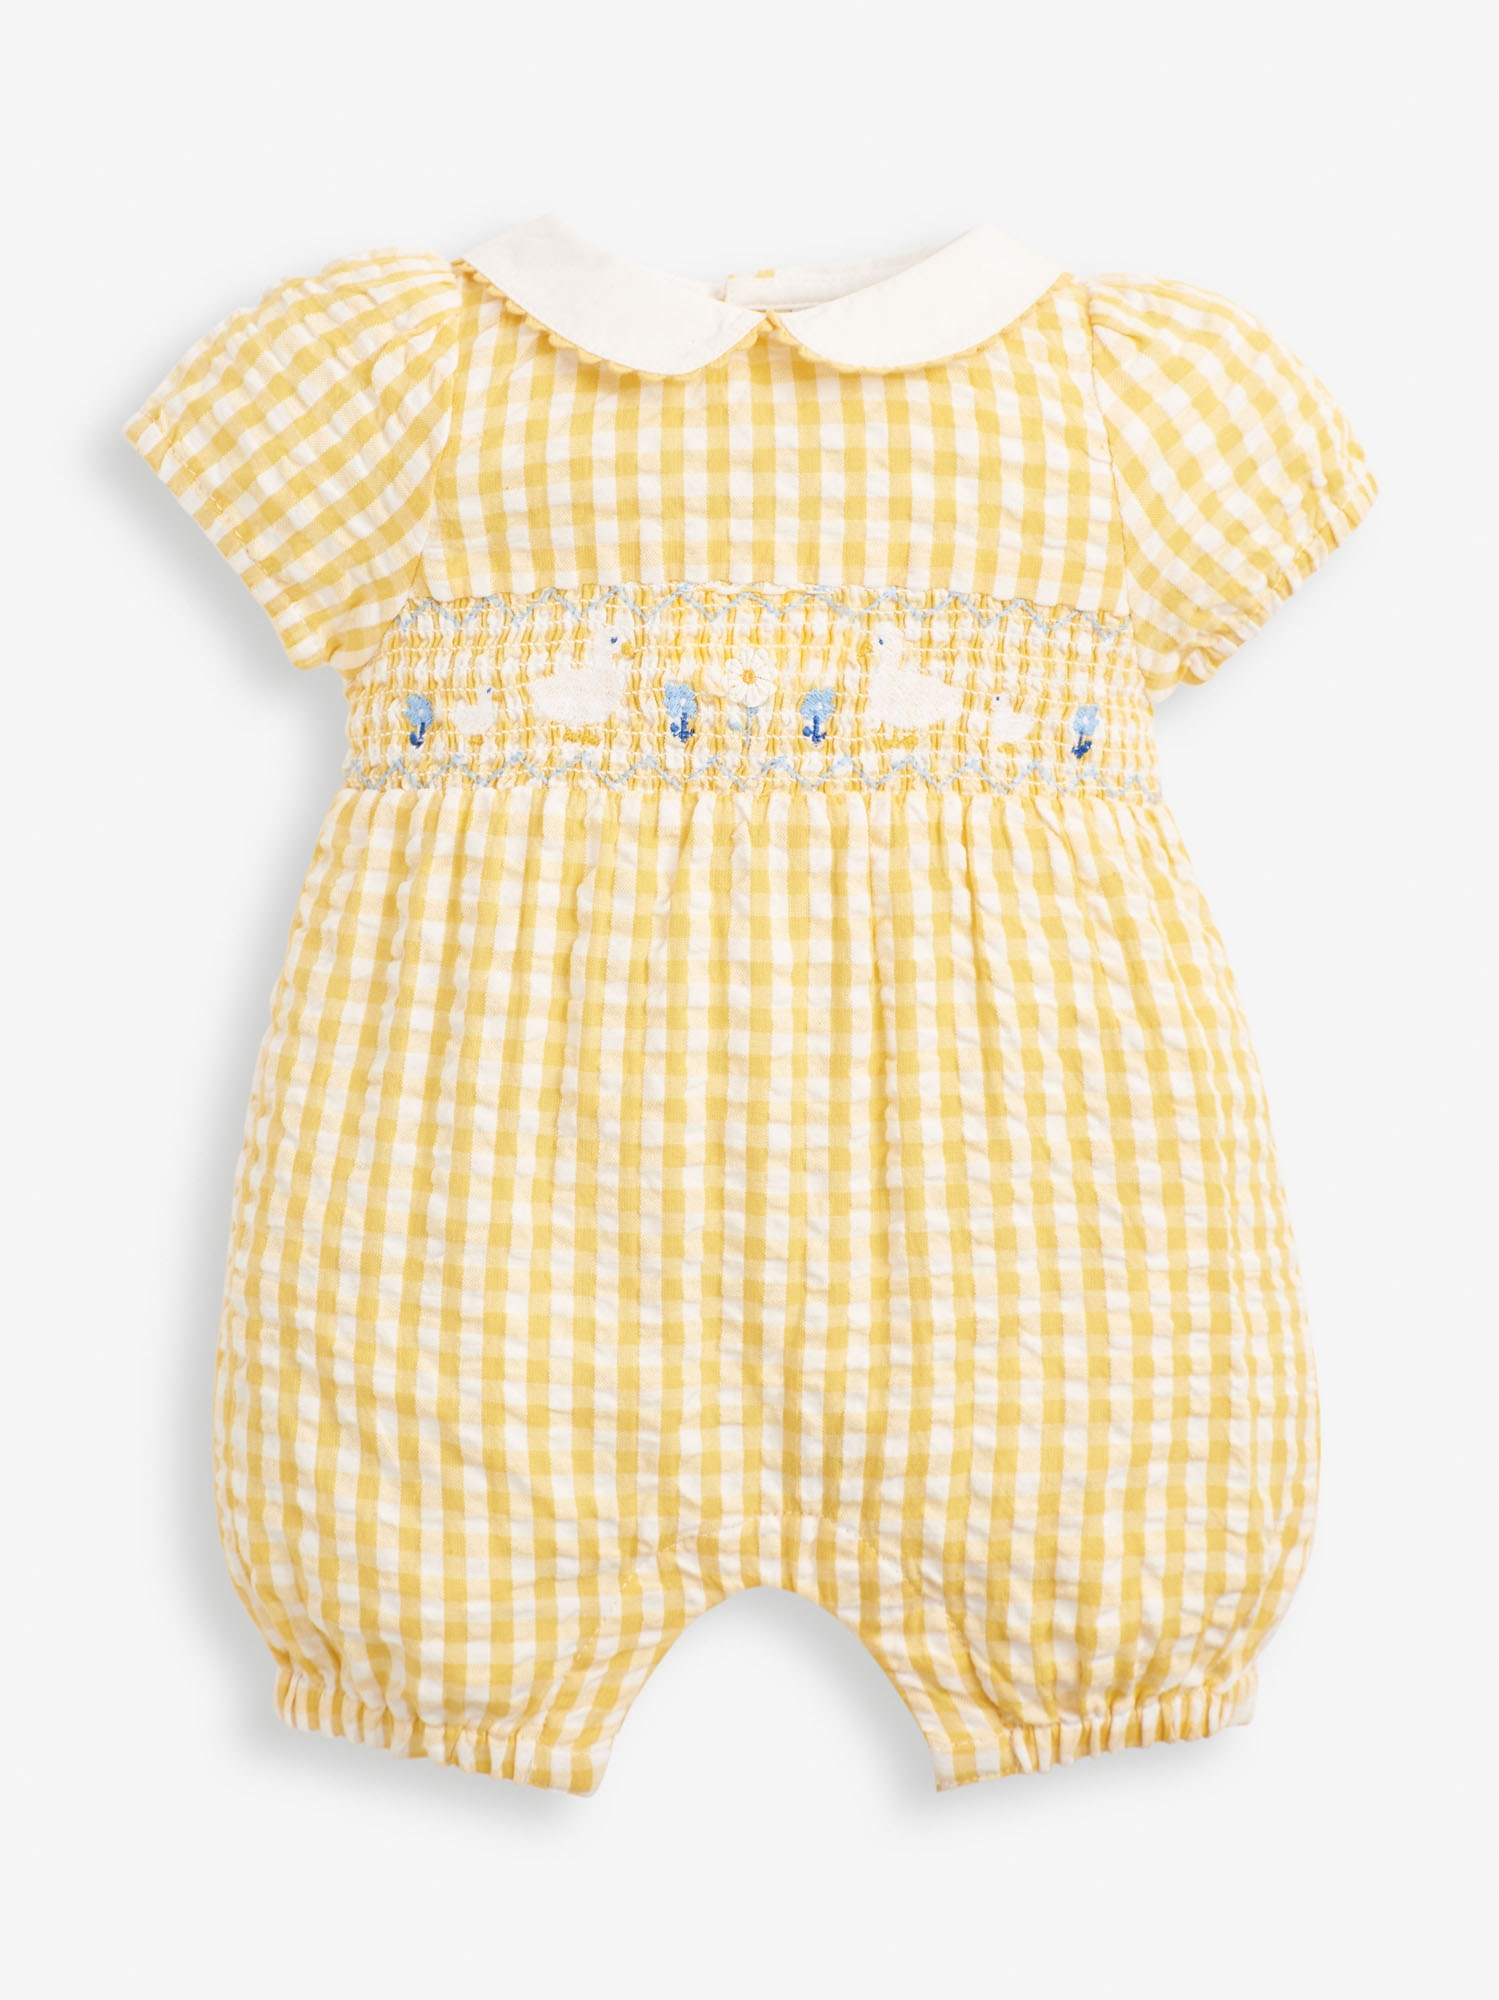 Baby Products Lemon Duck Embroidered Smocked Baby Romper